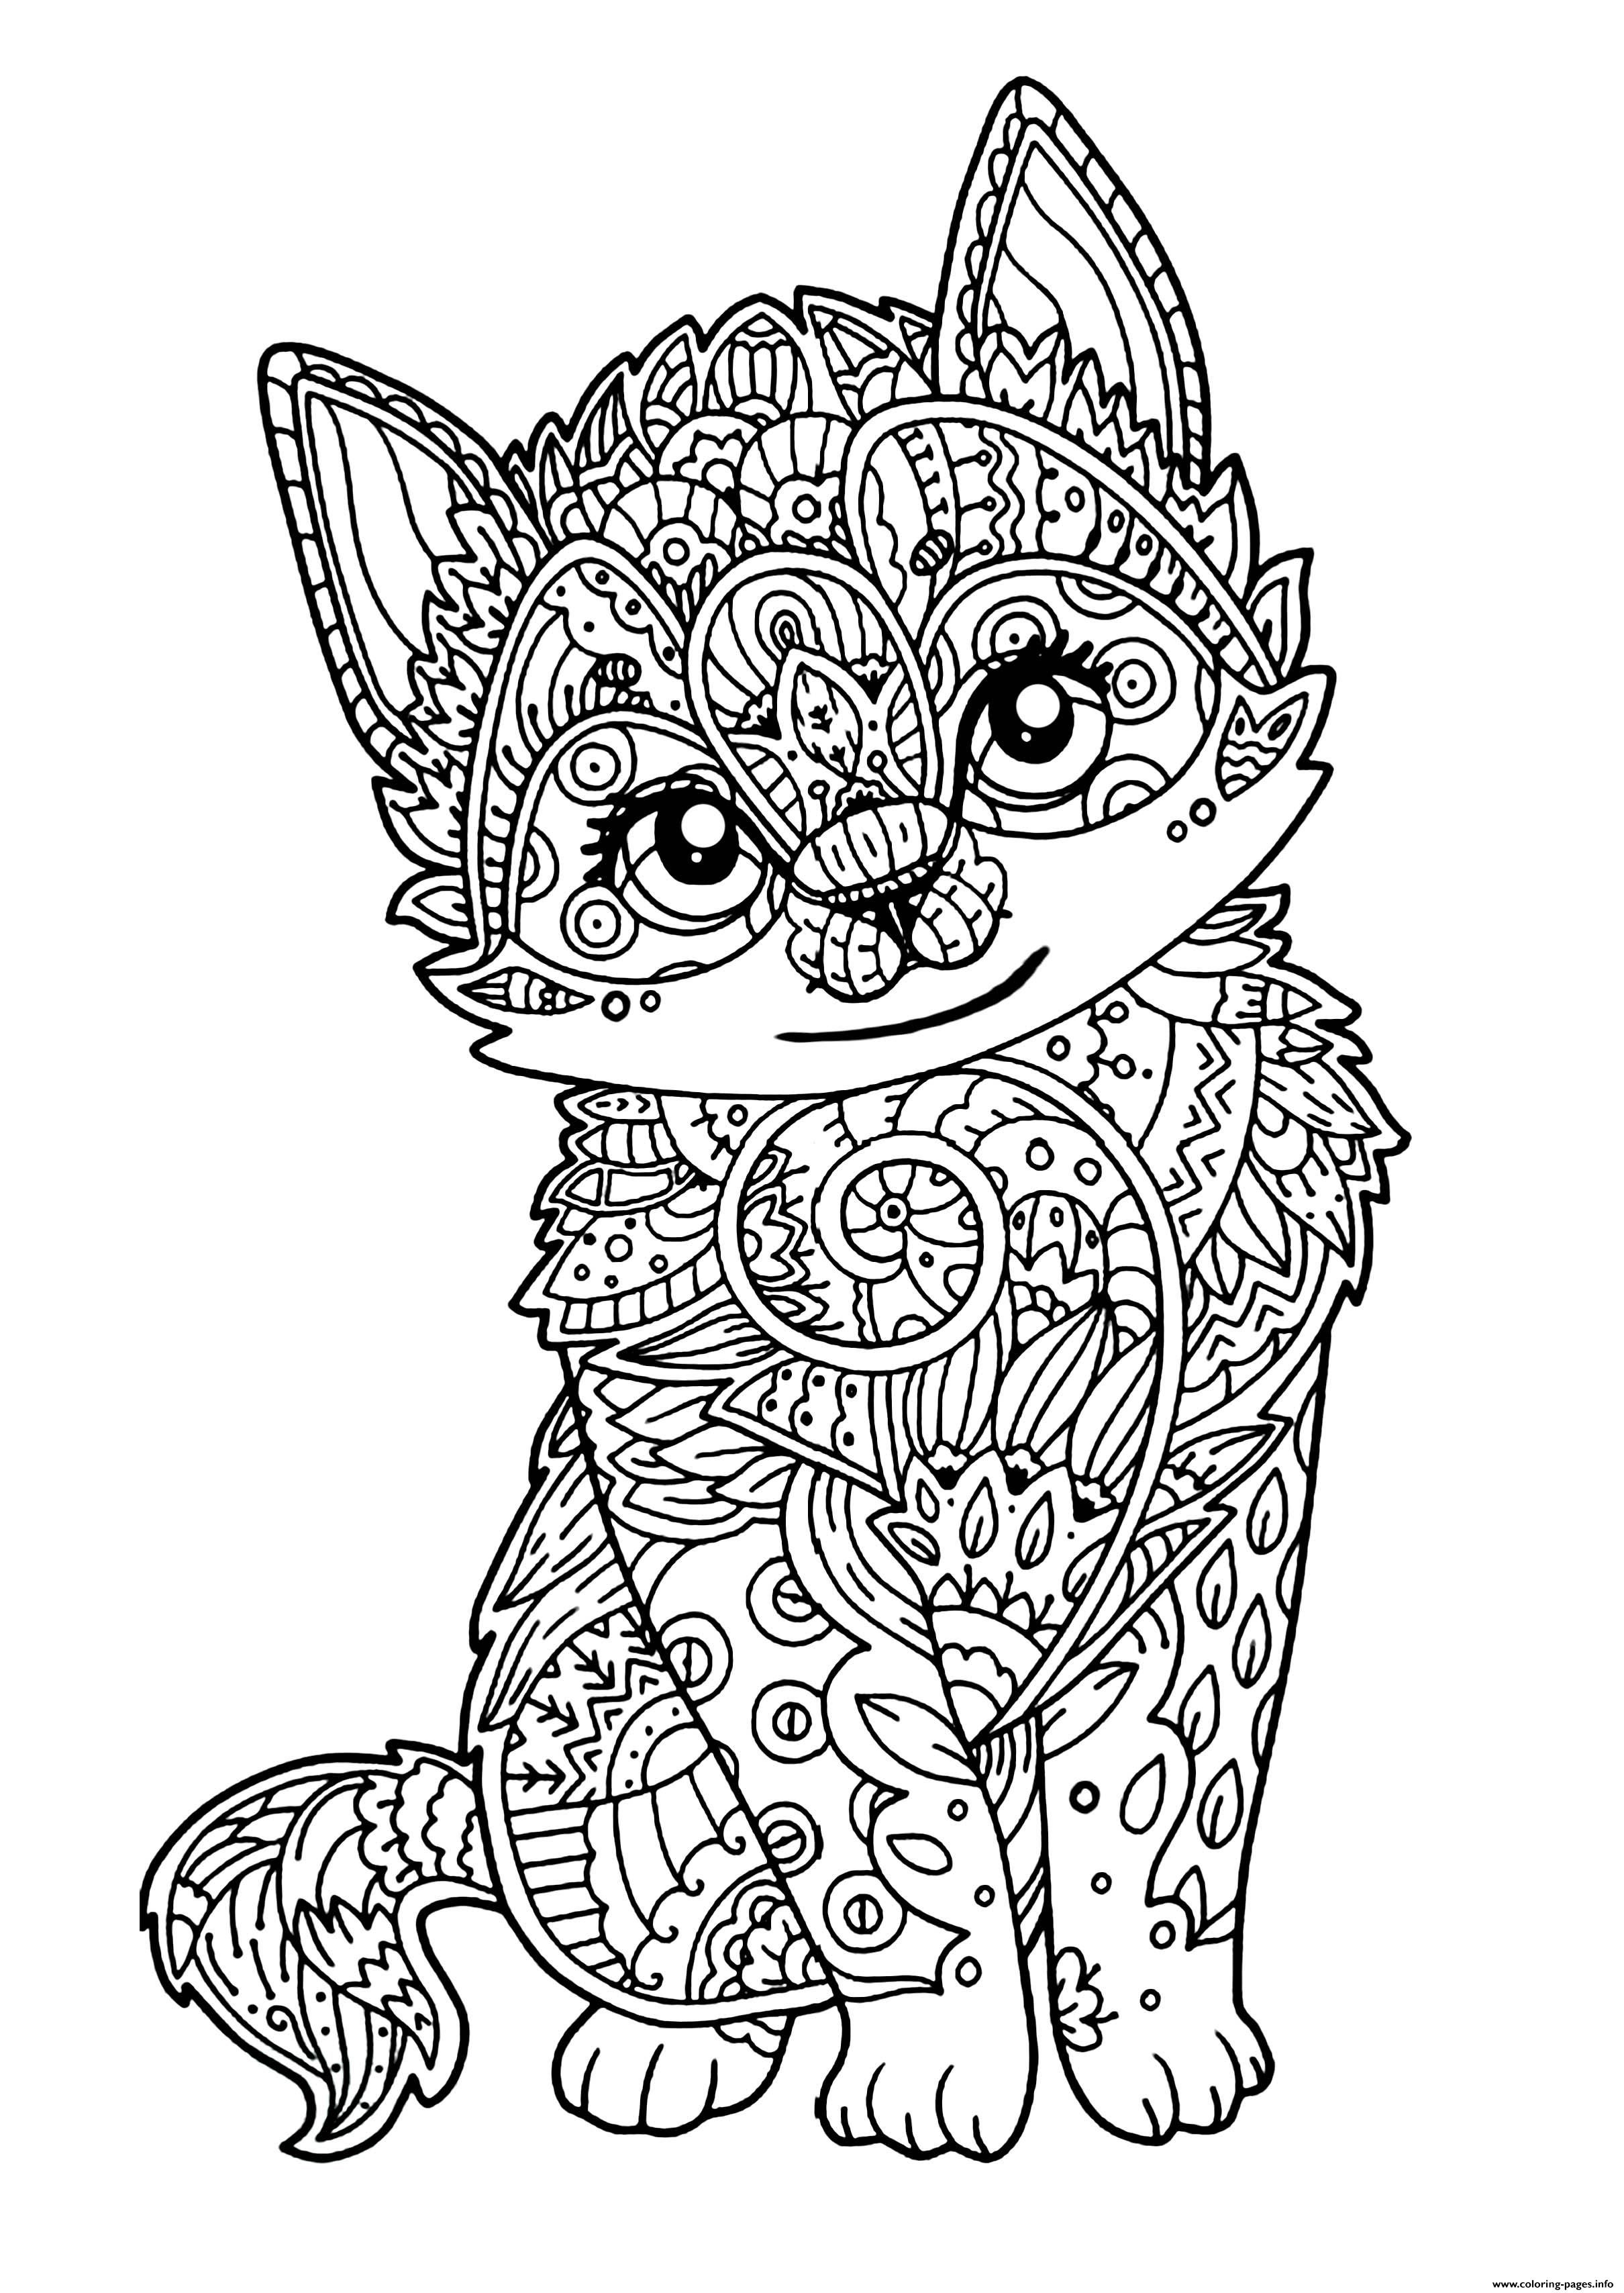 Http Coloring Pages Info Cute Cat Adult Zentangle Printable